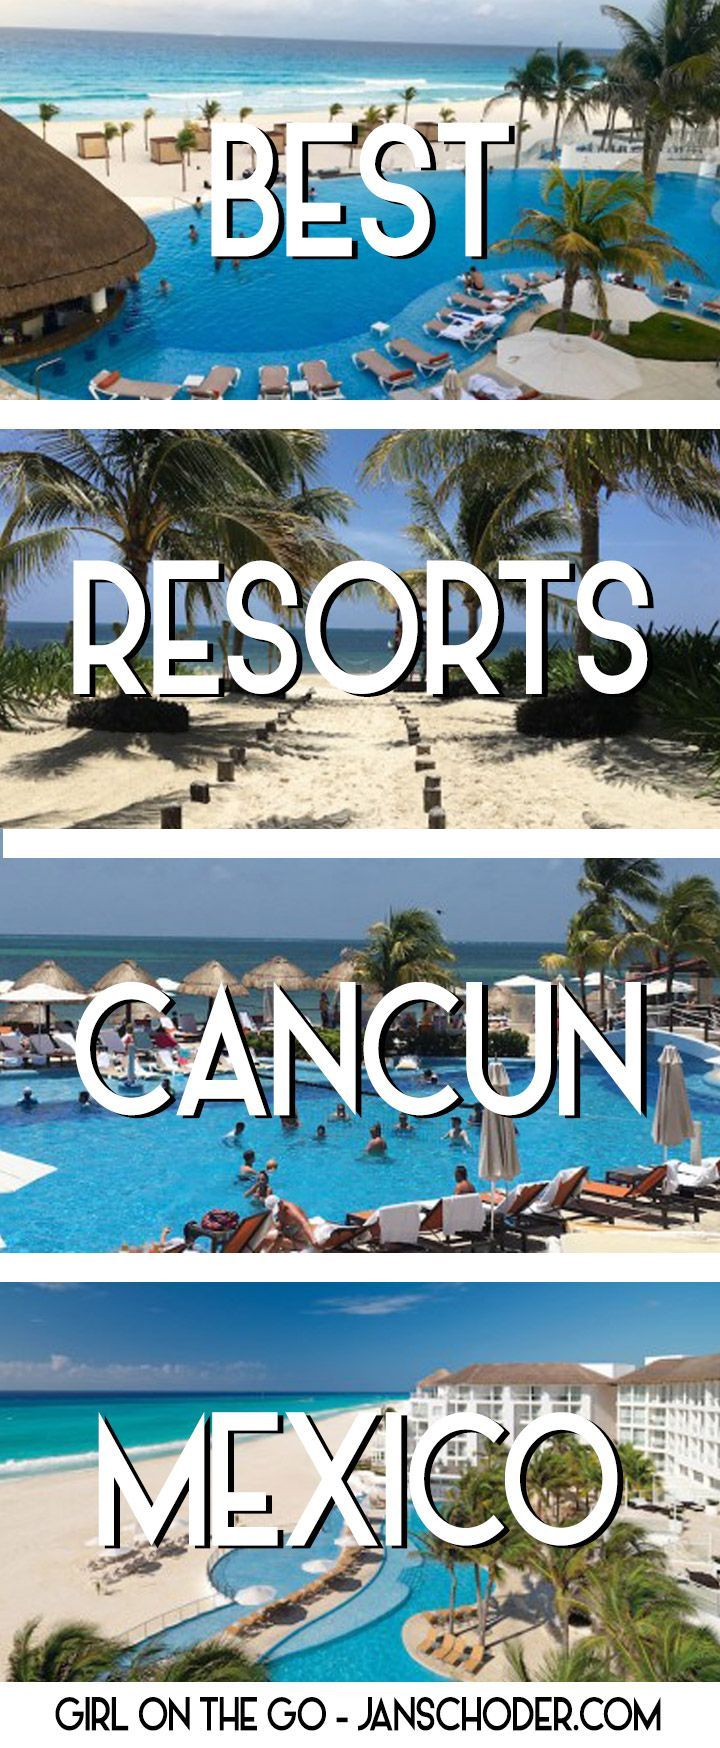 Palace Resorts Best All Inclusive Resorts In Cancun Mexico Mexico Travel Destinations Mexico Vacation Cancun Mexico Vacation